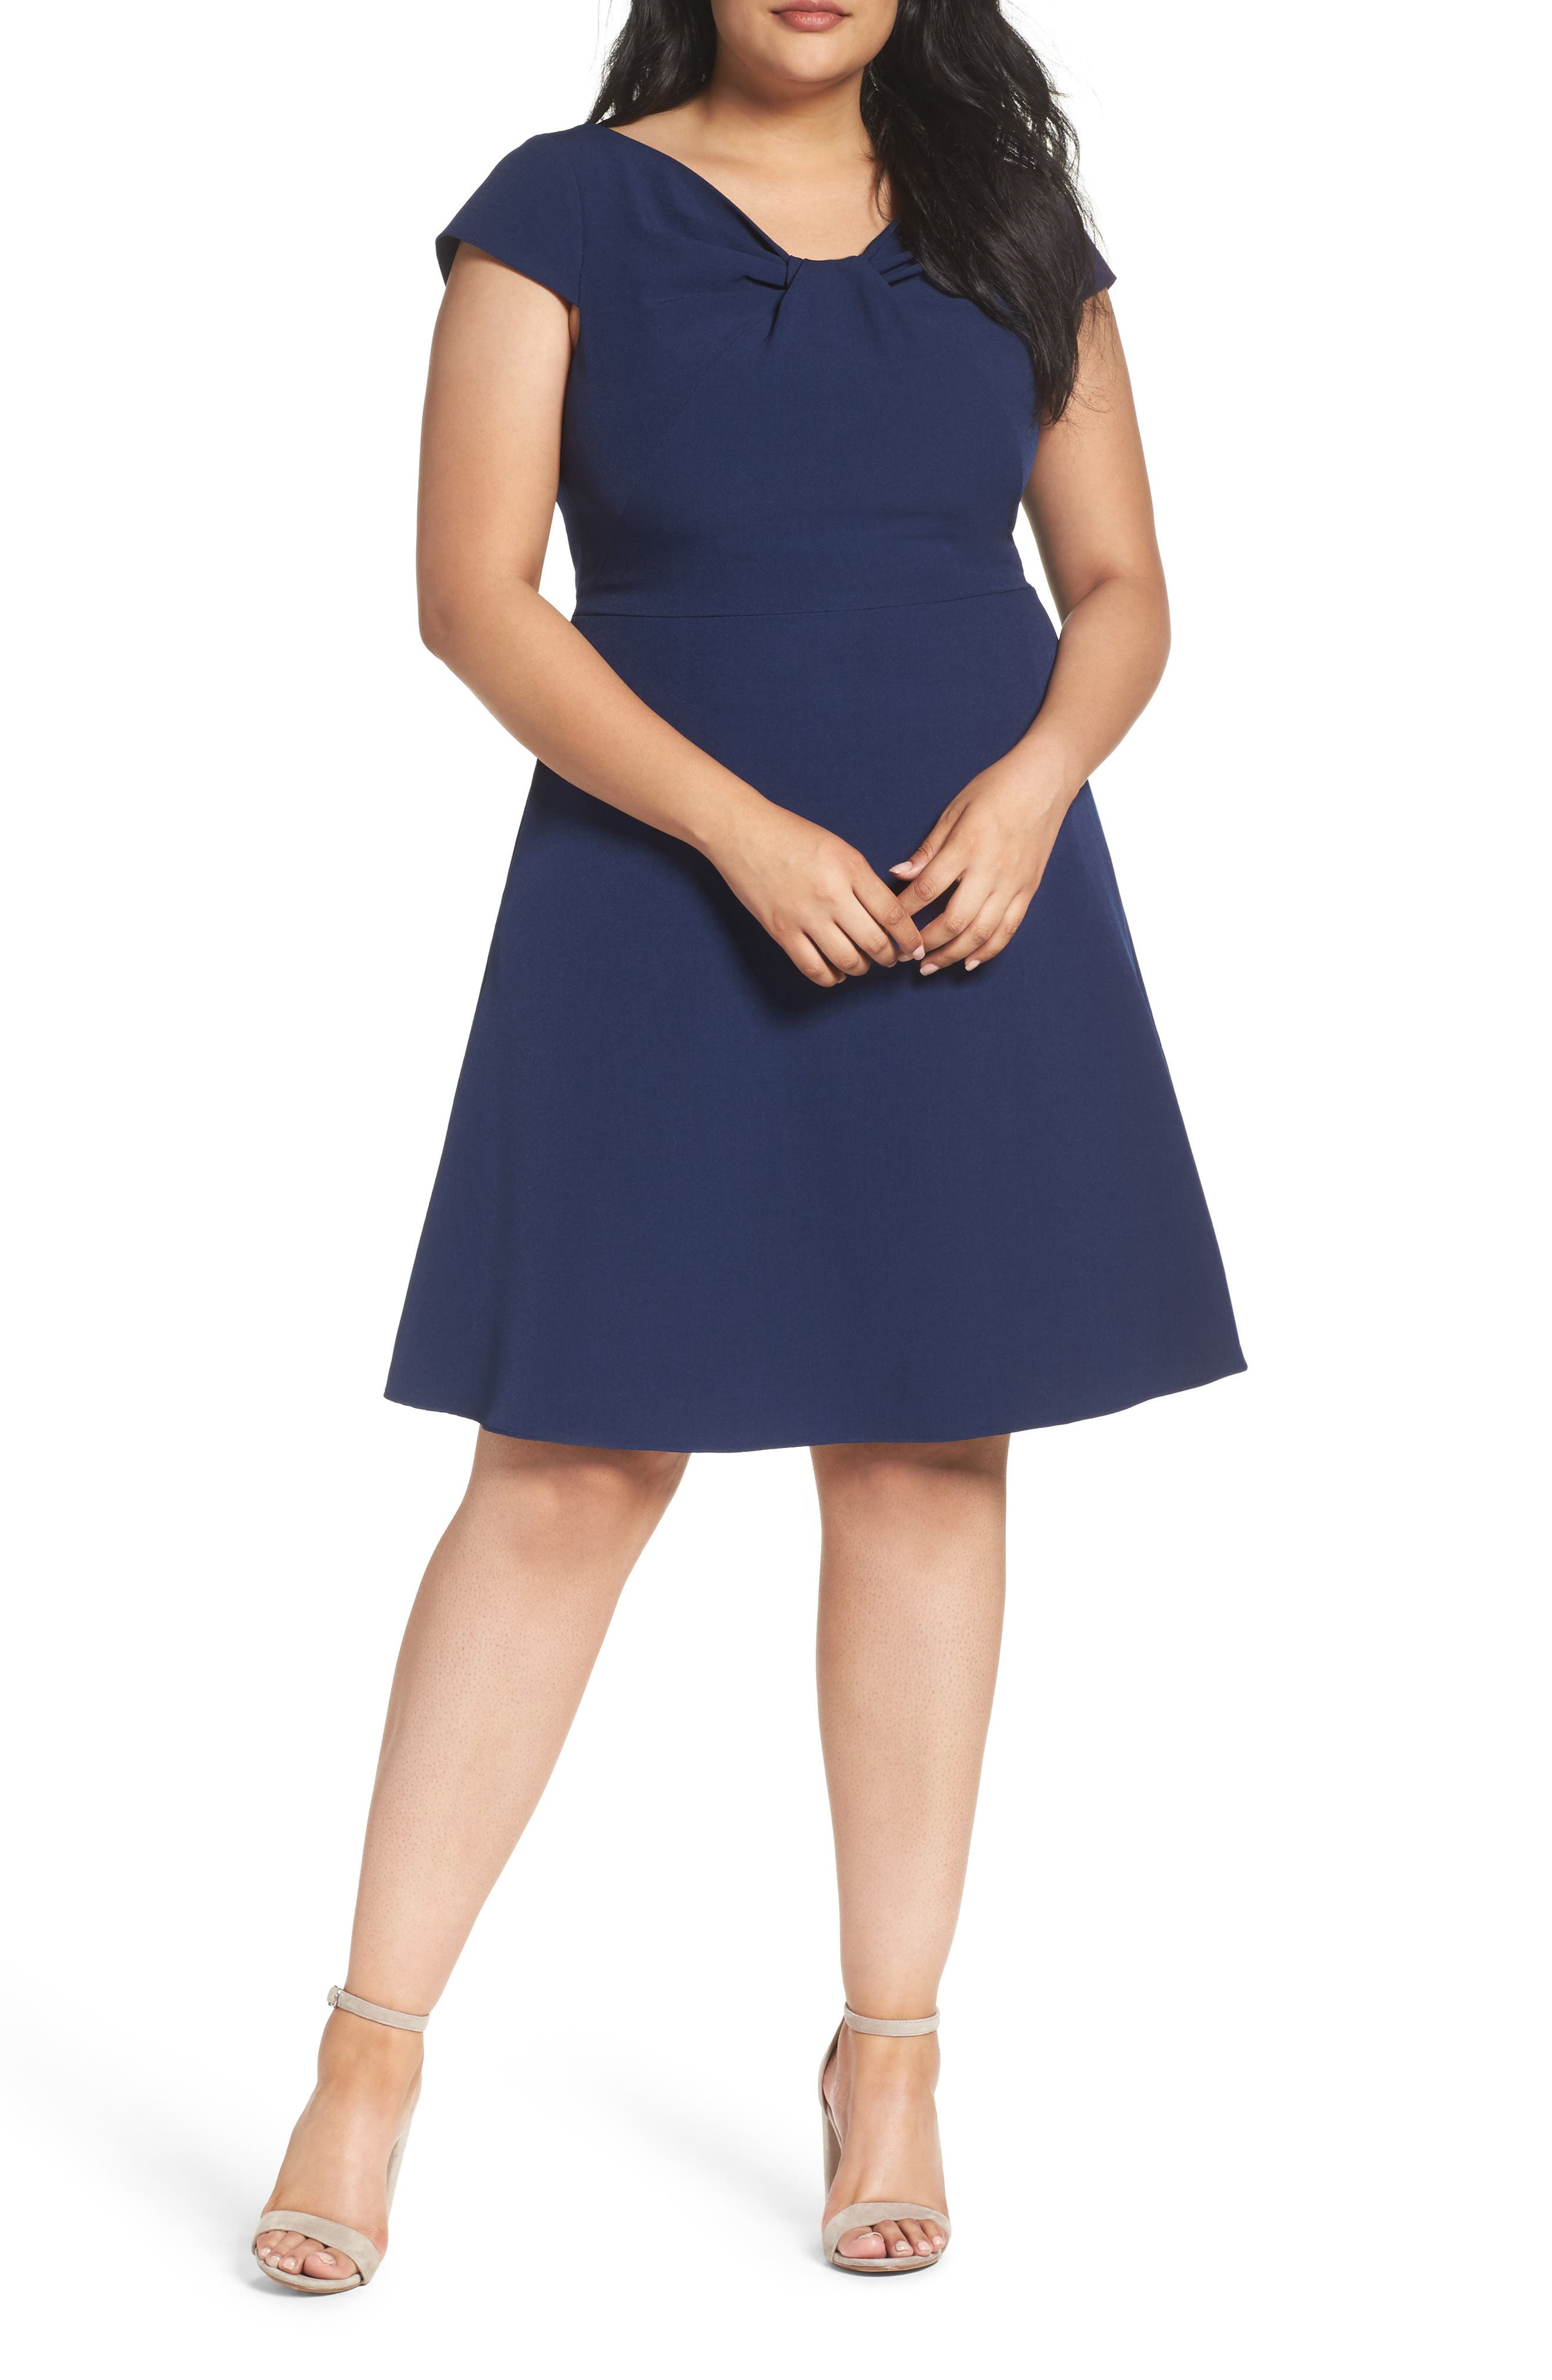 Adrianna Papell Drape Neck Fit & Flare Dress (Plus Size)